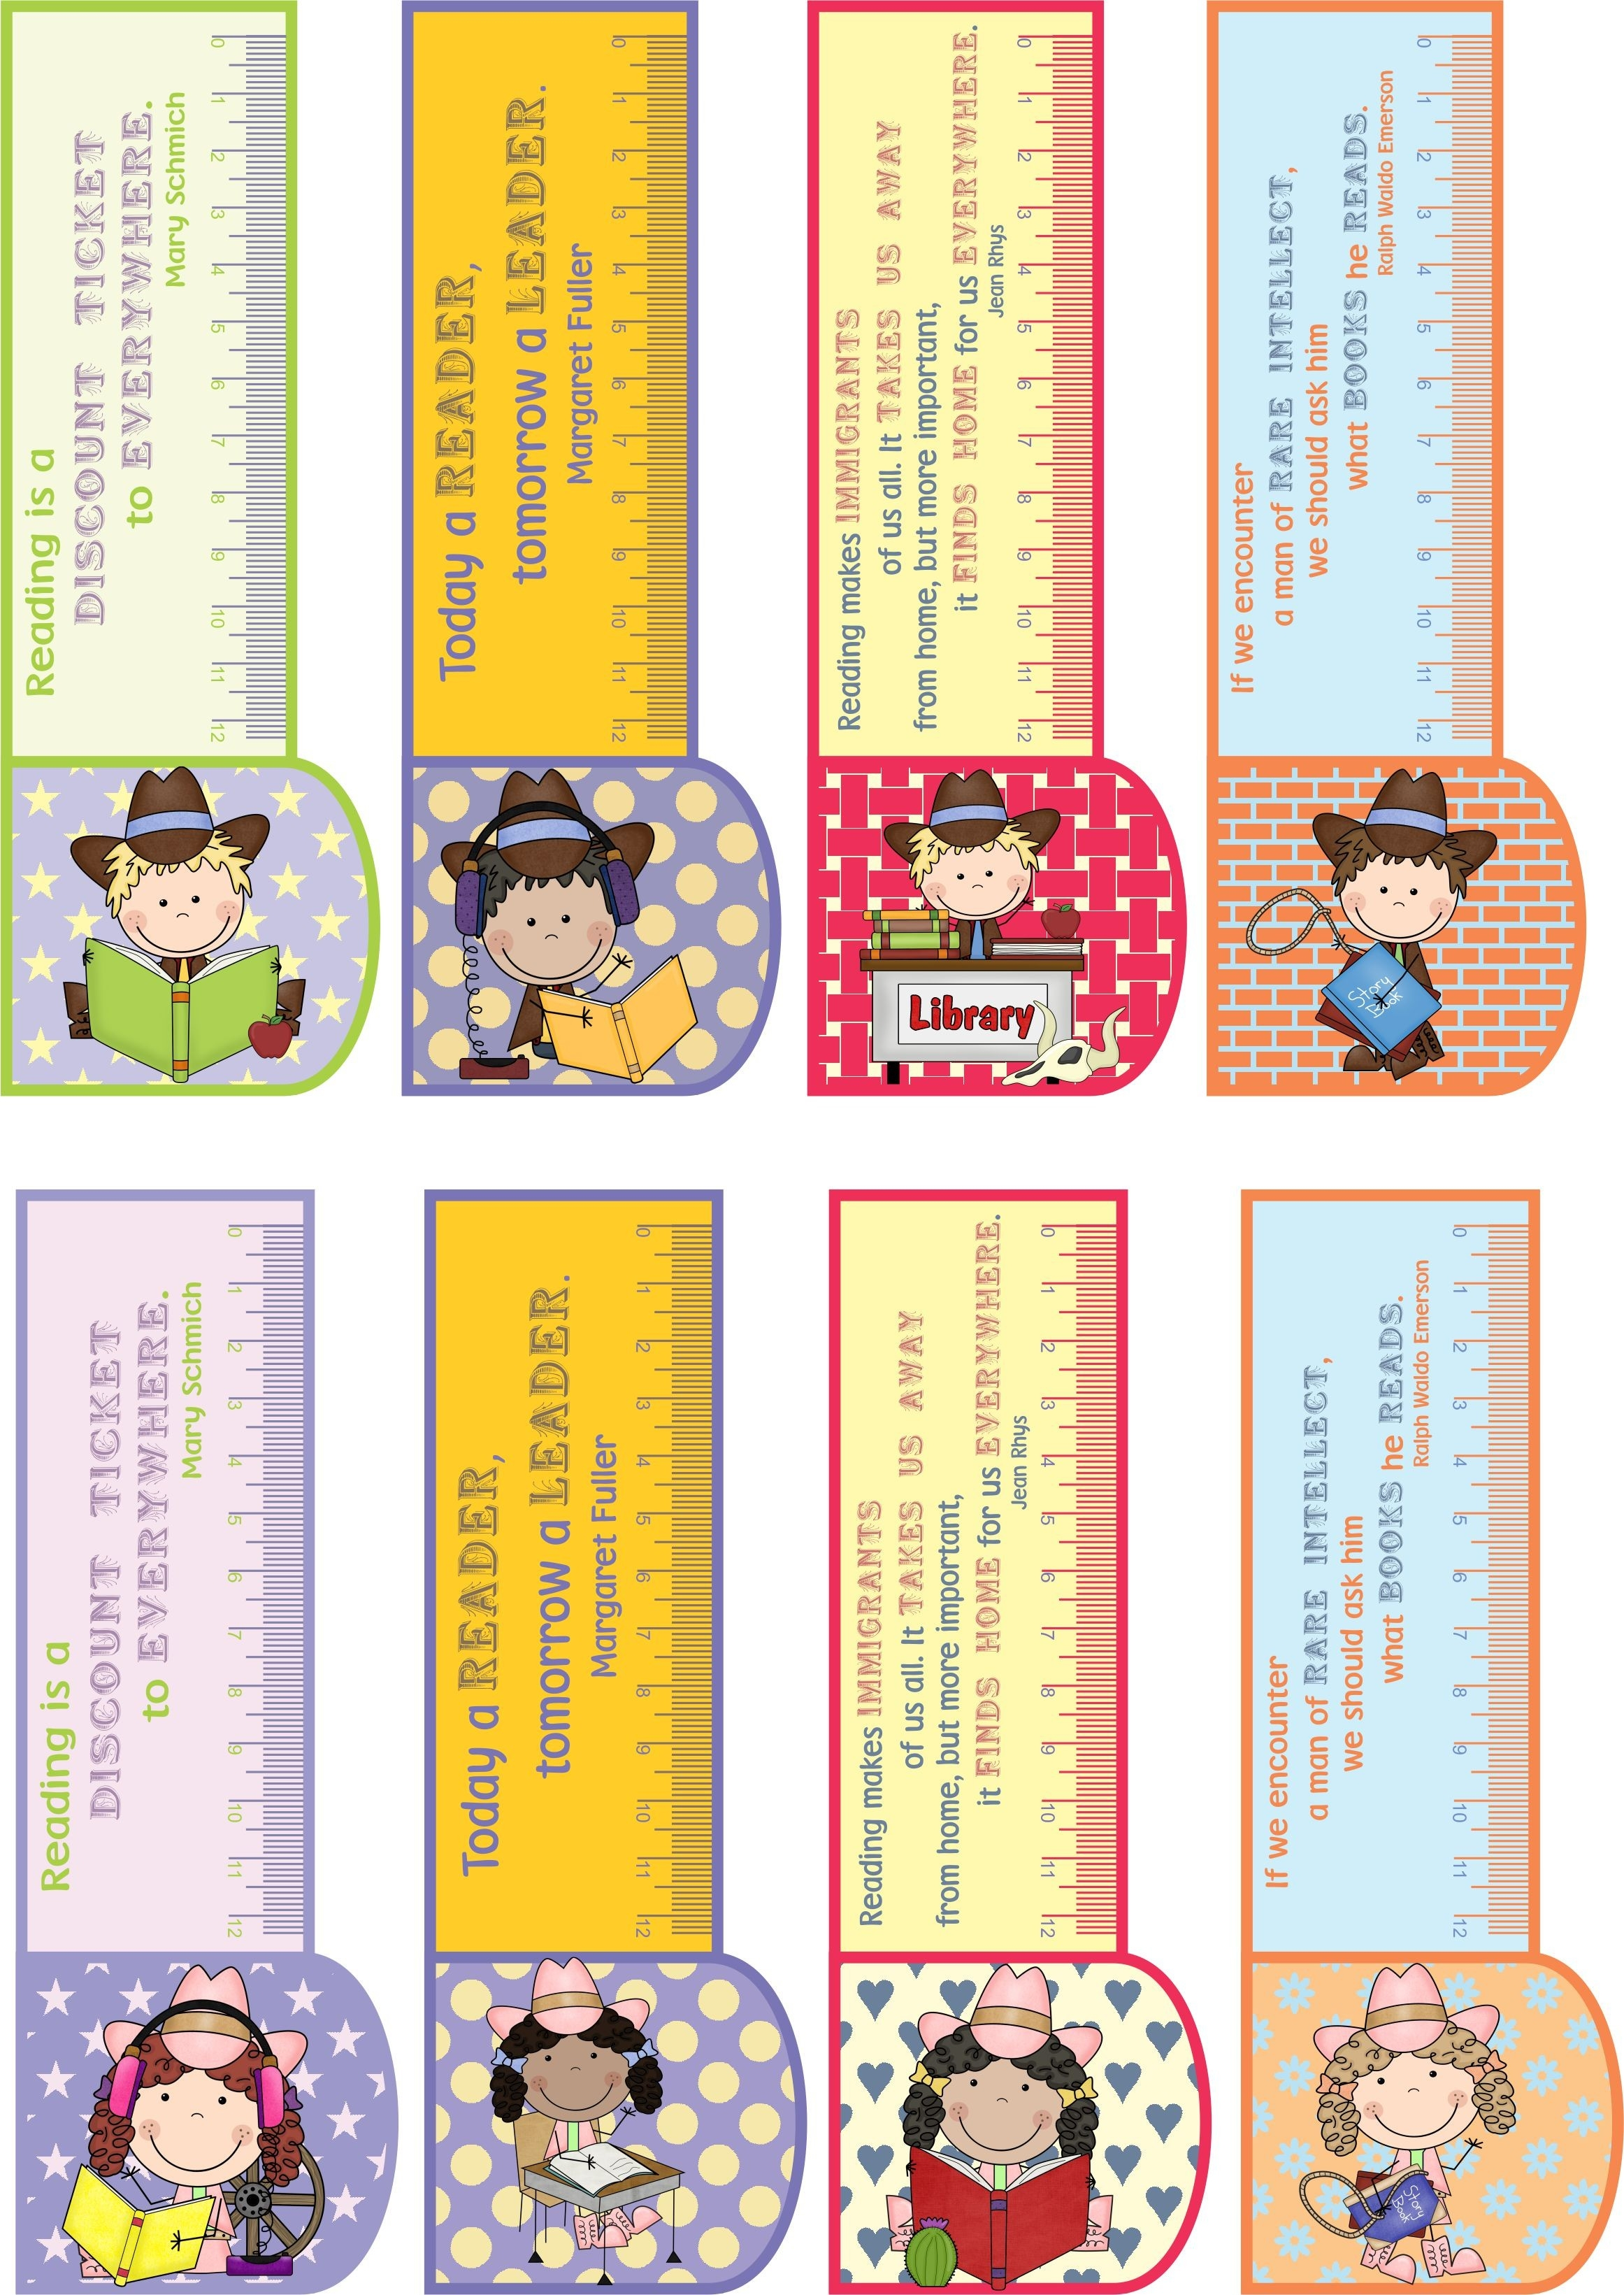 Printable Bookmarks Country Girl/boy 3In1: Bookmark +Ruler + regarding Bookmarks With Quotes About Reading 25893